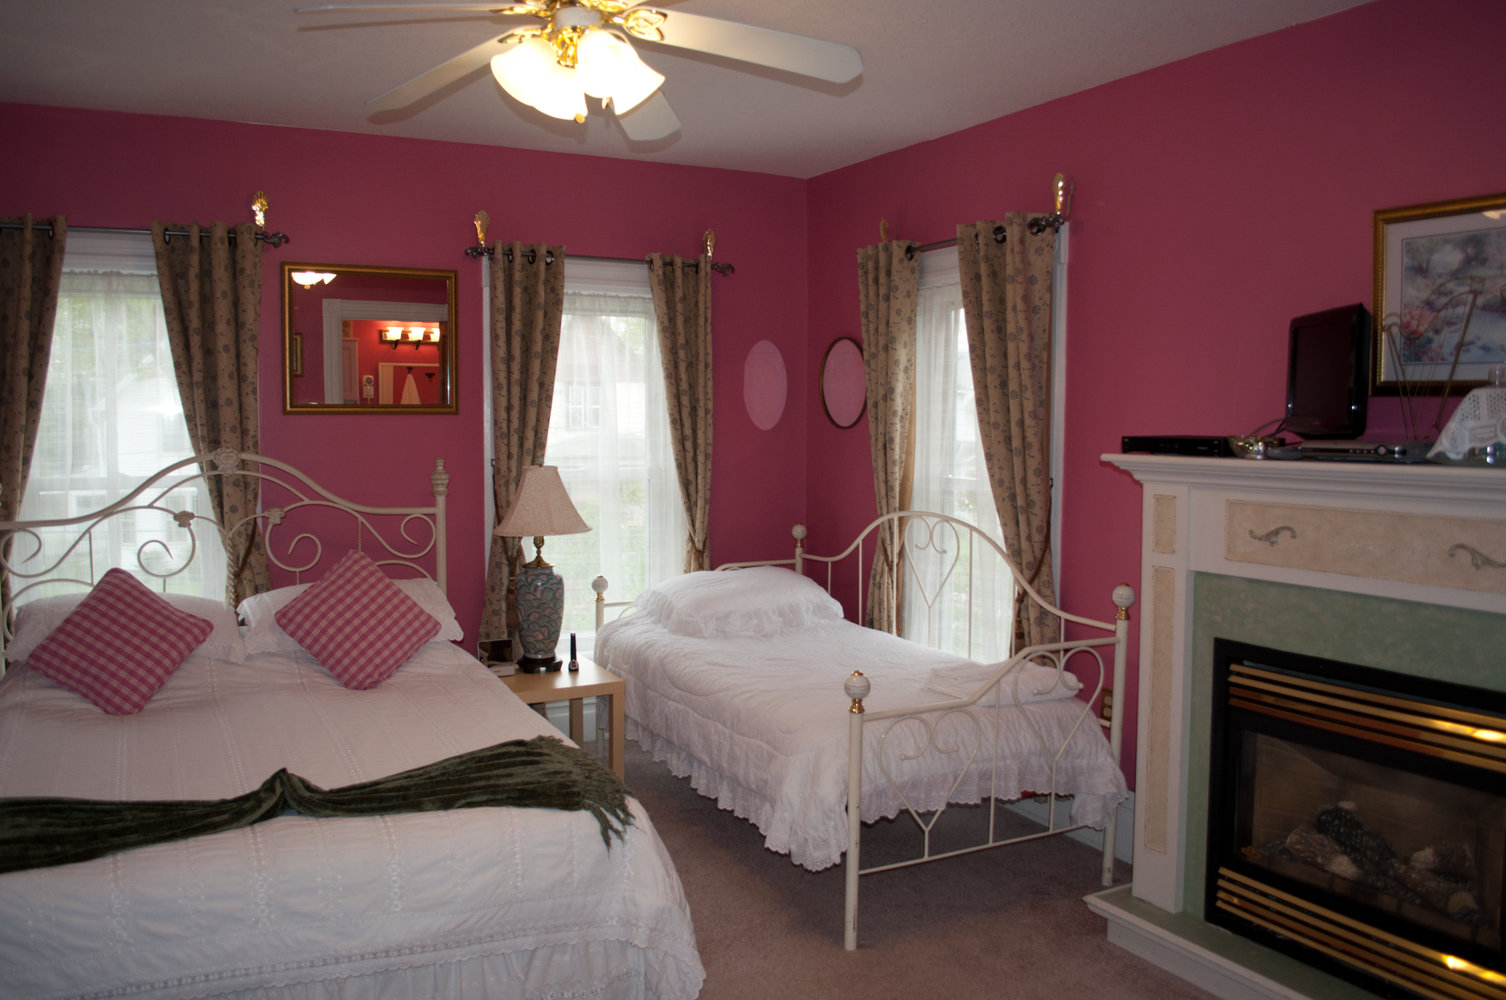 Lillianna Room